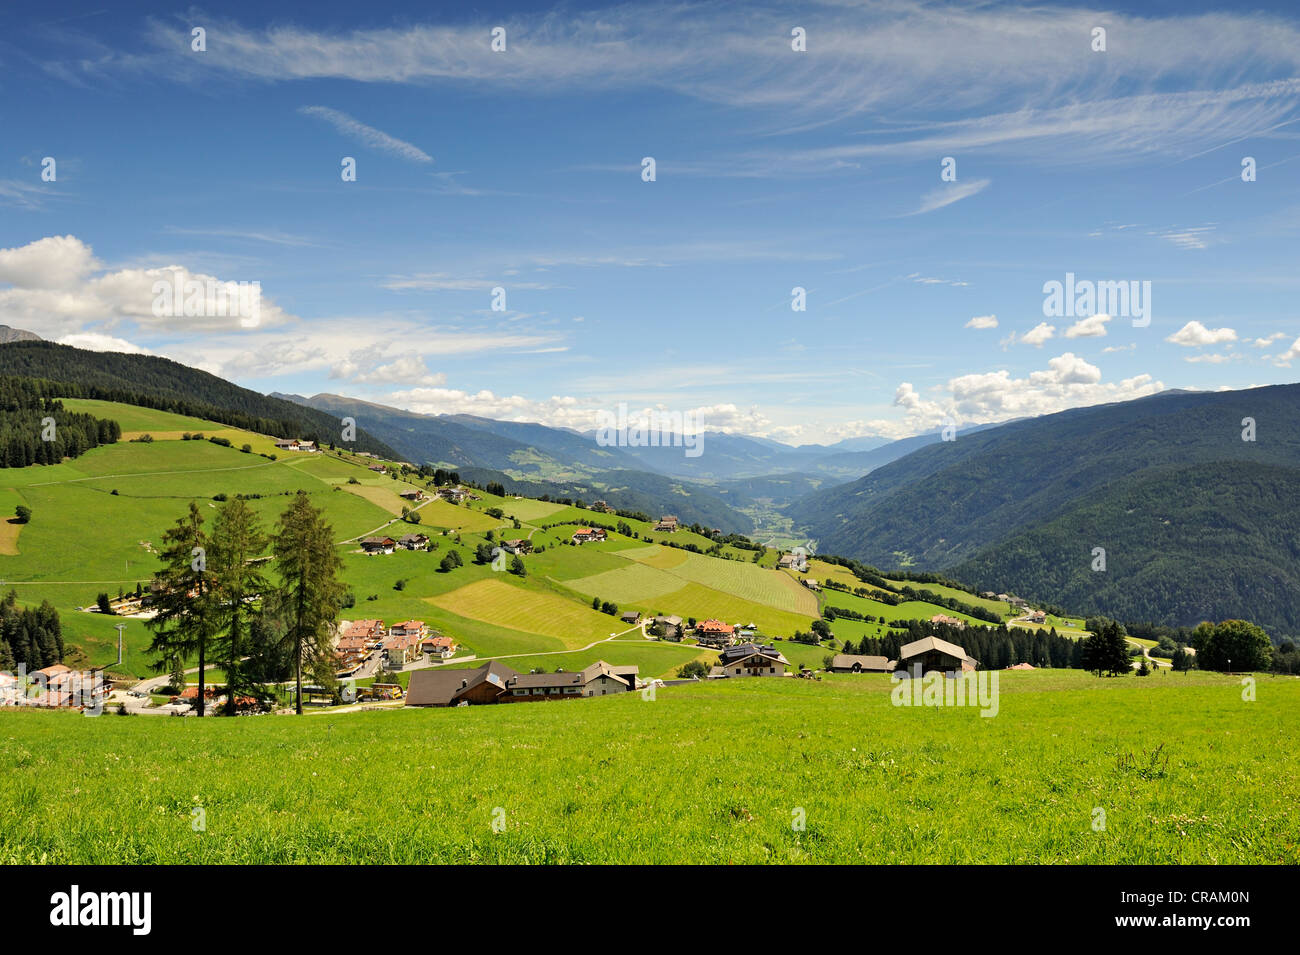 Scattered settlements of the municipality of Maranza, Pusteria Valley, Alto Adige, Italy, Europe - Stock Image